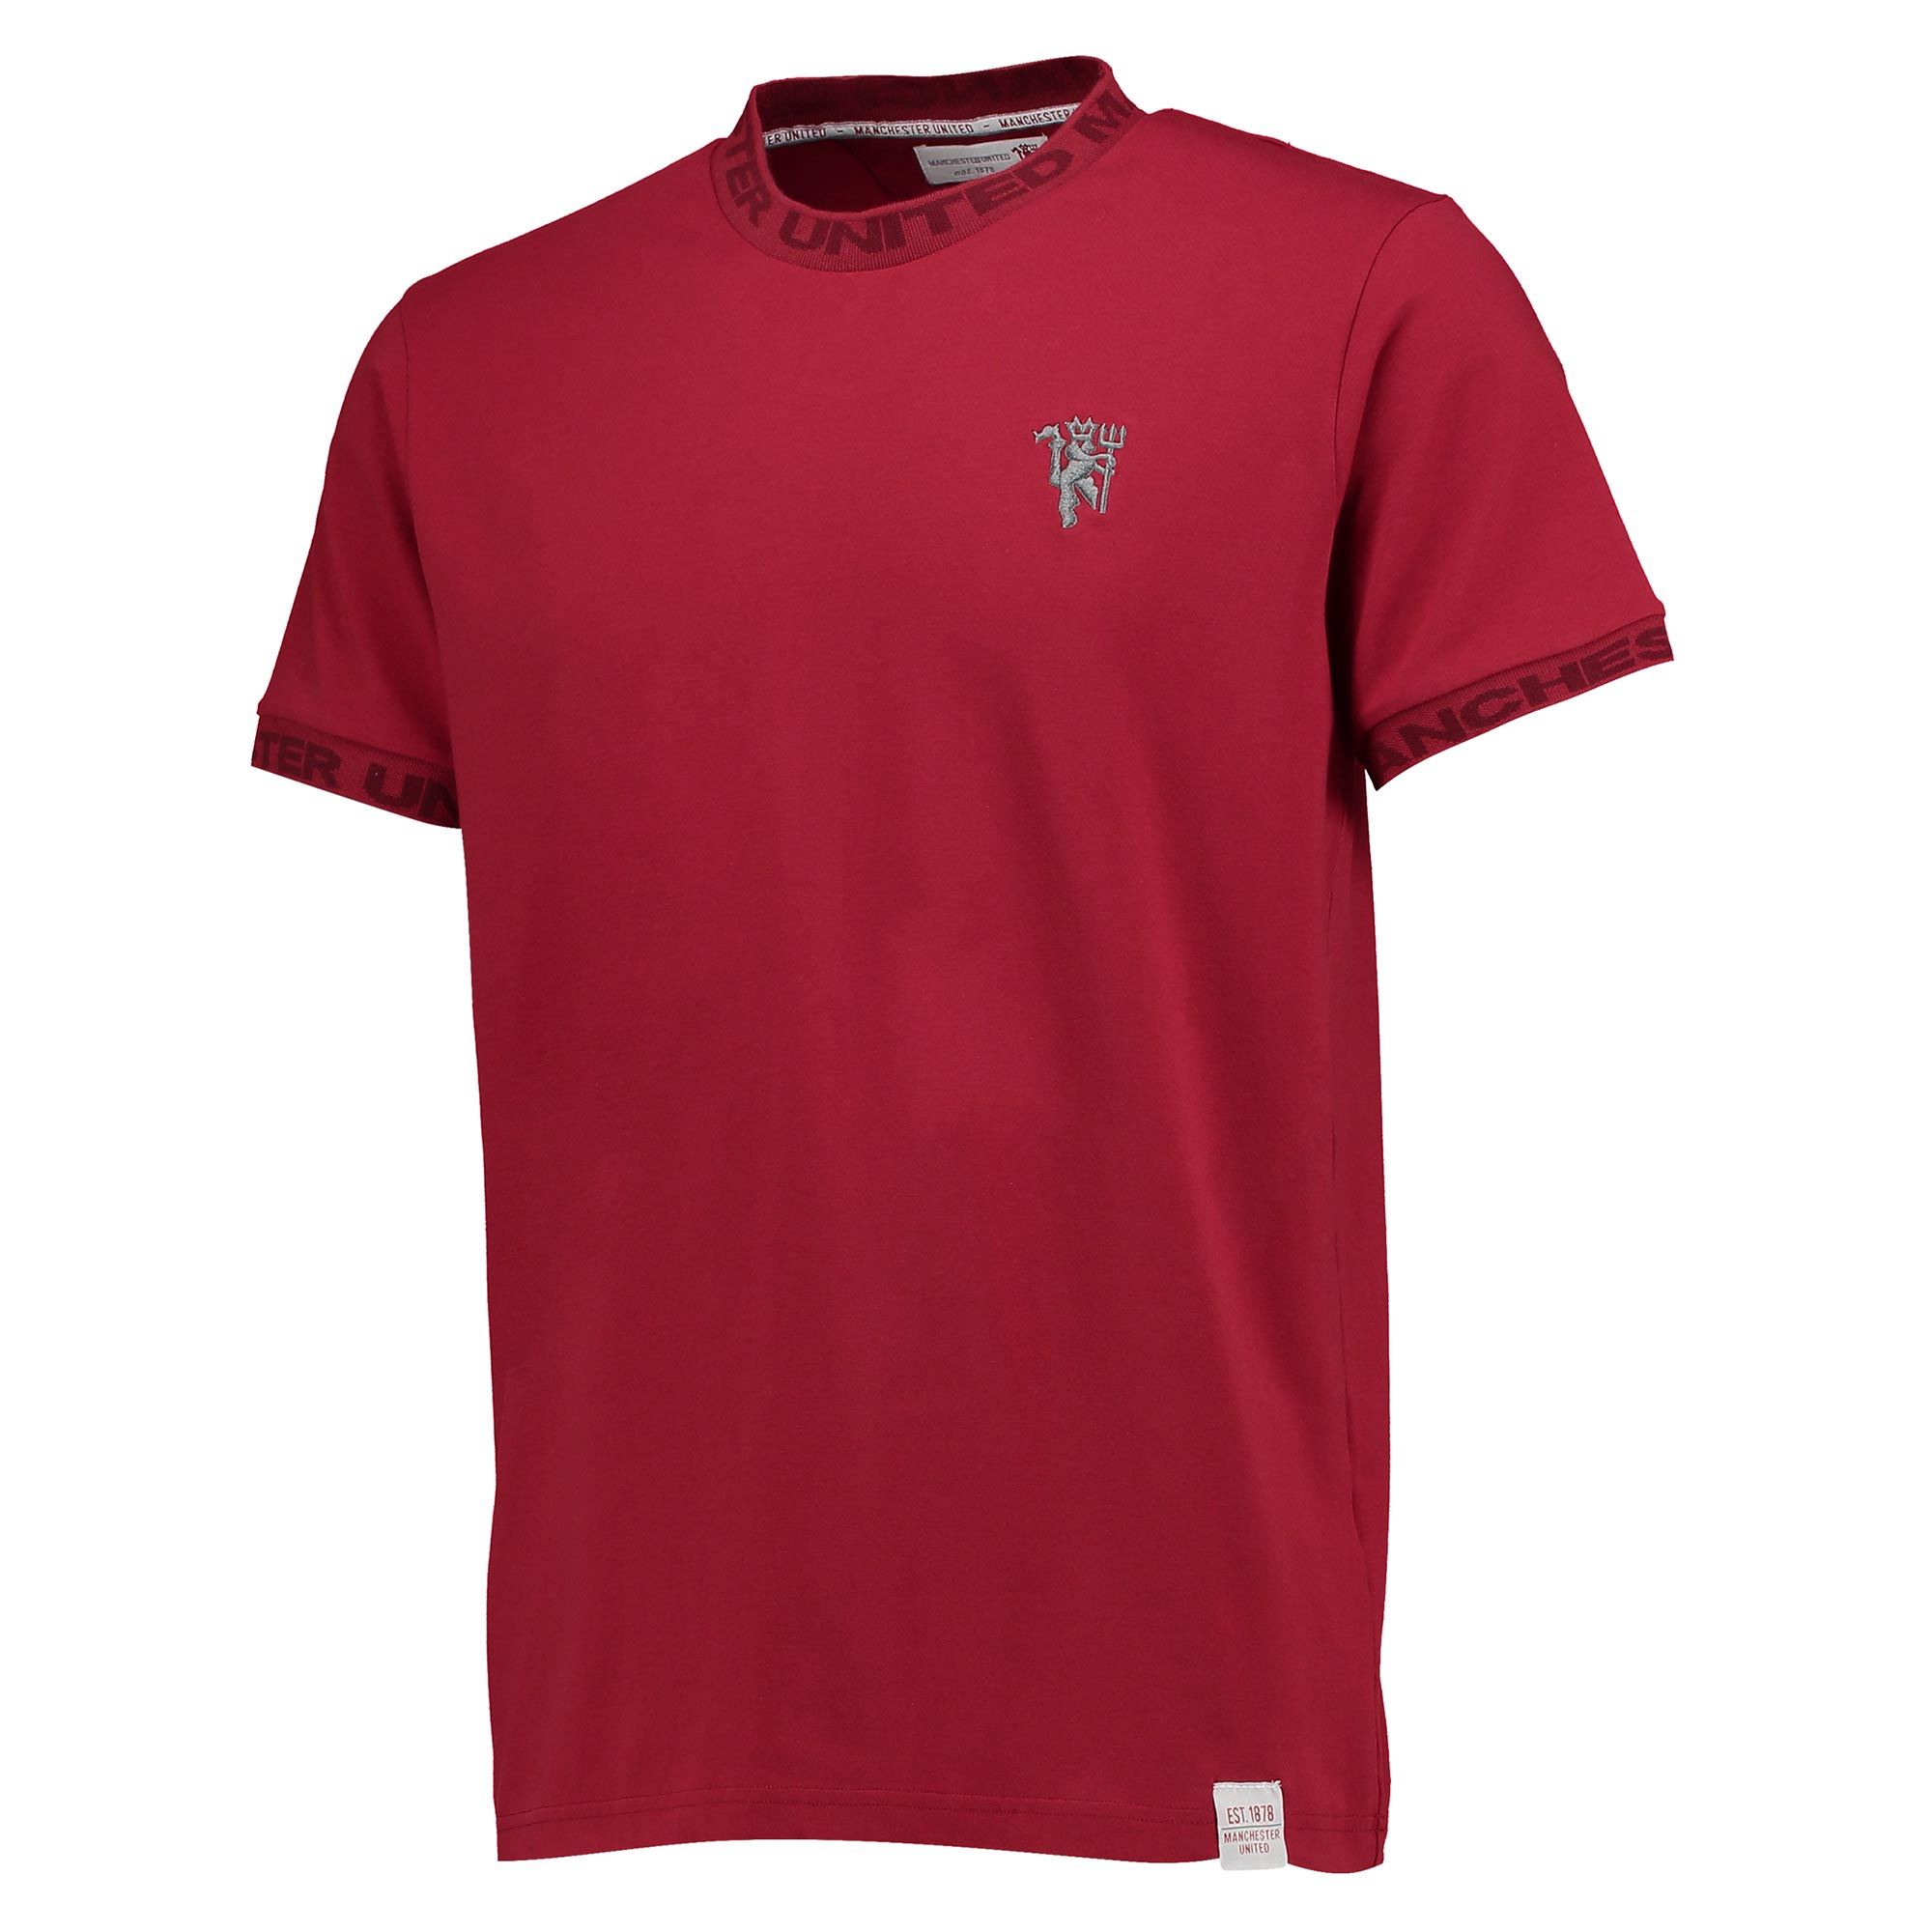 Manchester United Lifestyle T-Shirt - Brick Red - Mens